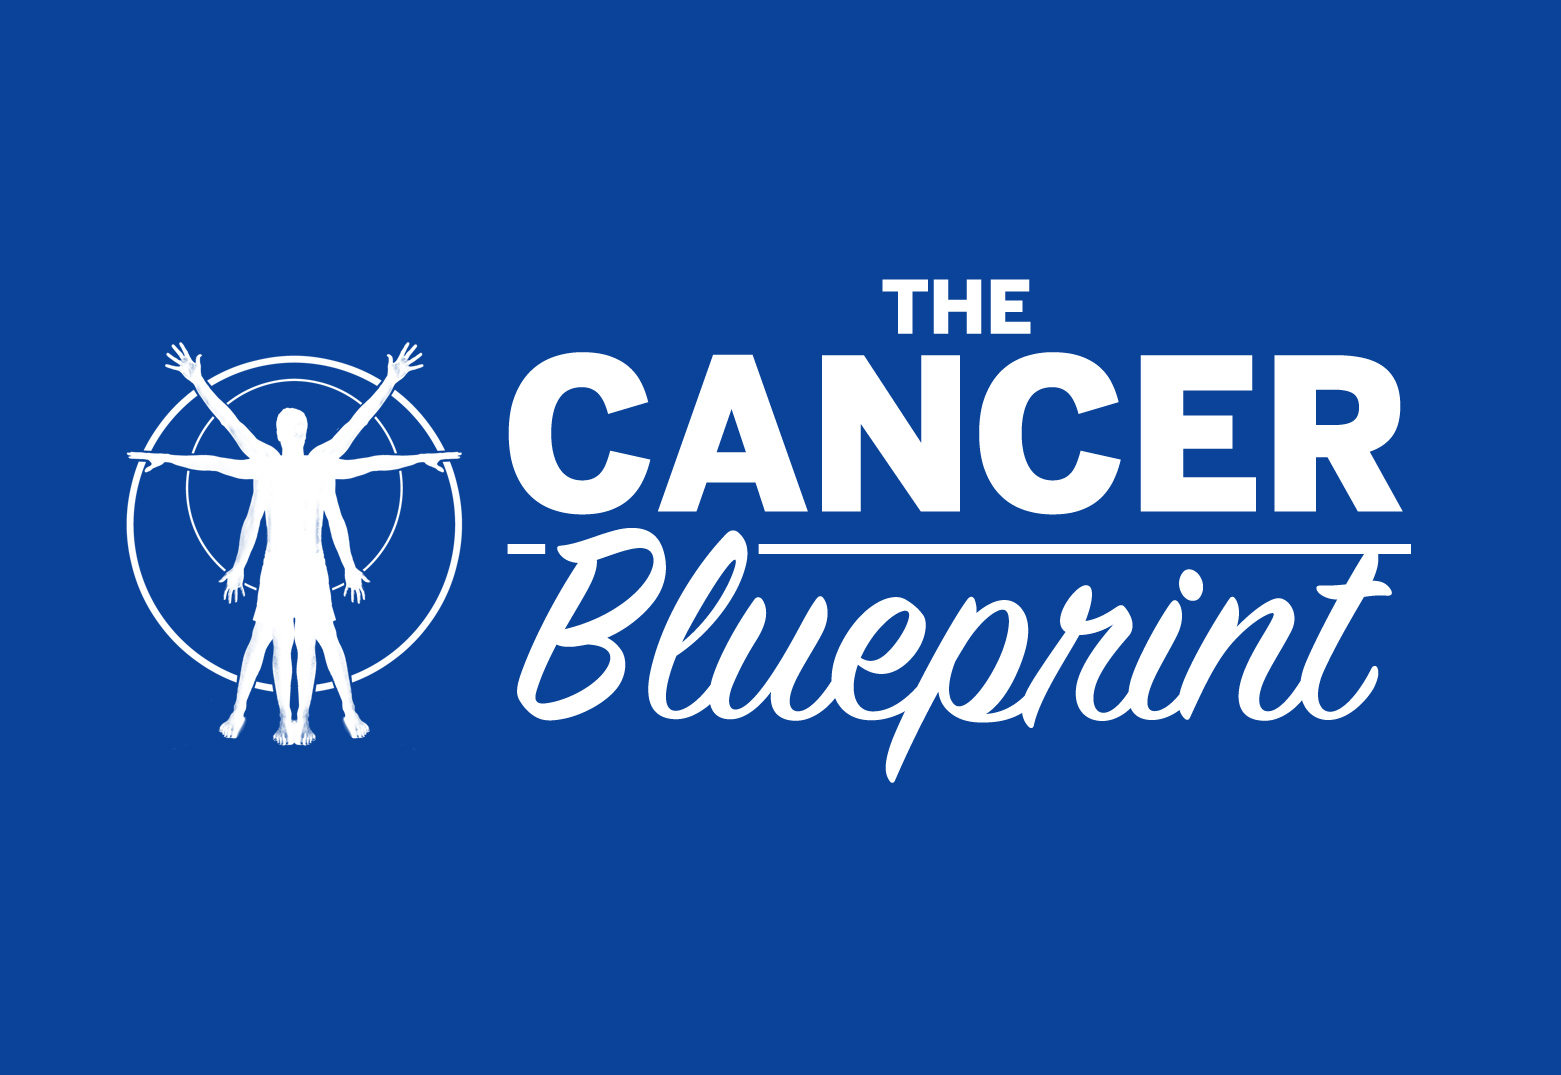 The cancer blueprint this huge gap which is evident around the world is the primary reason for the development of the cancer blueprint malvernweather Choice Image